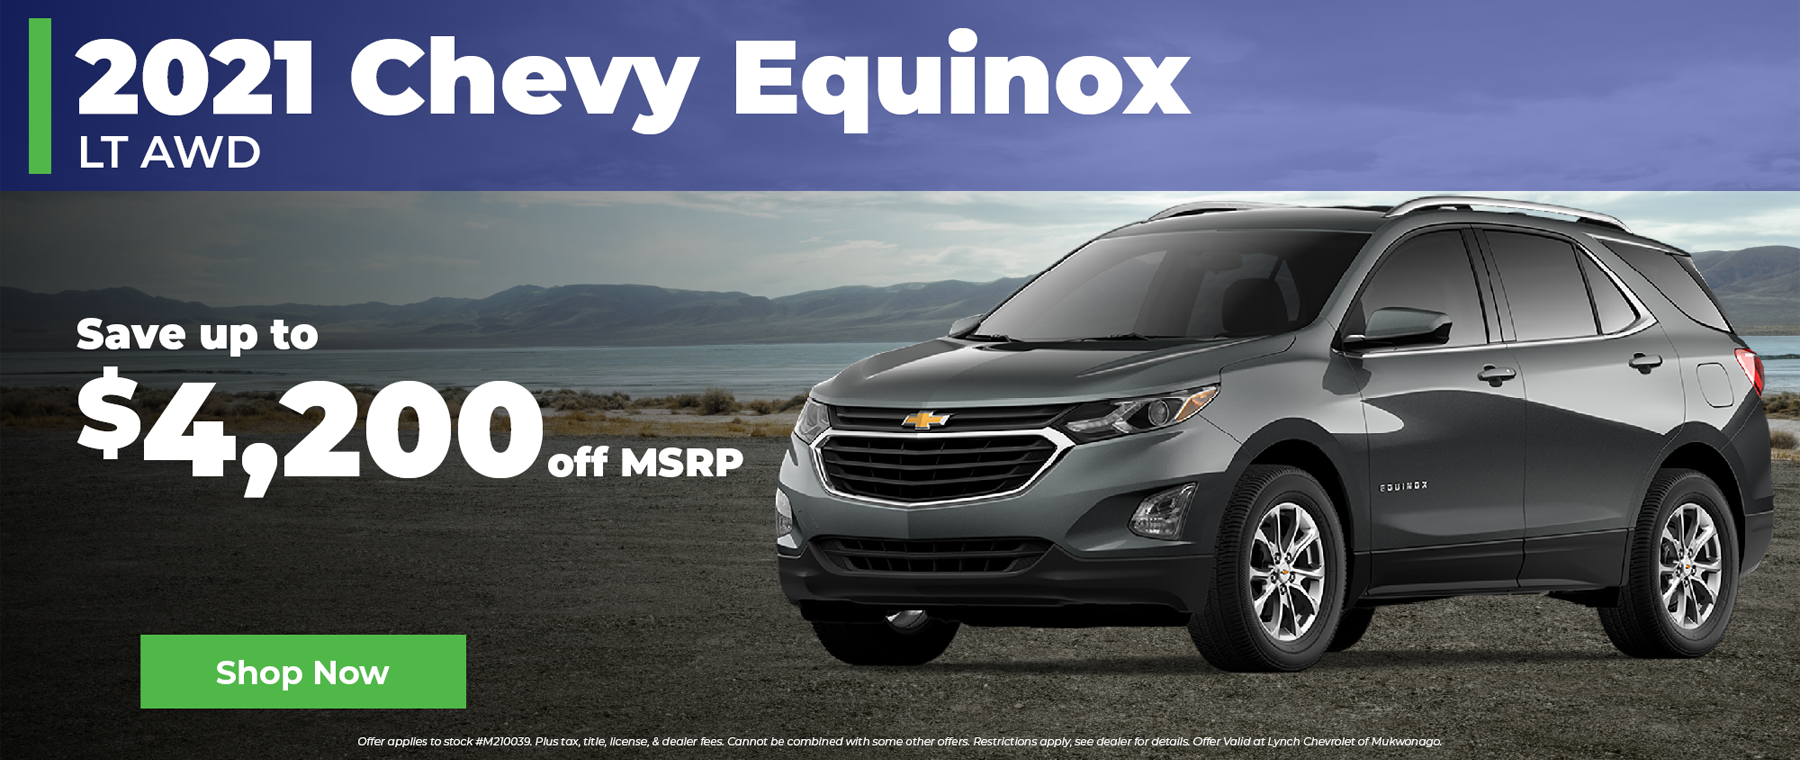 Save $4200 off MSRP on a 2021 Chevy Equinox in Mukwonago Wisconsin